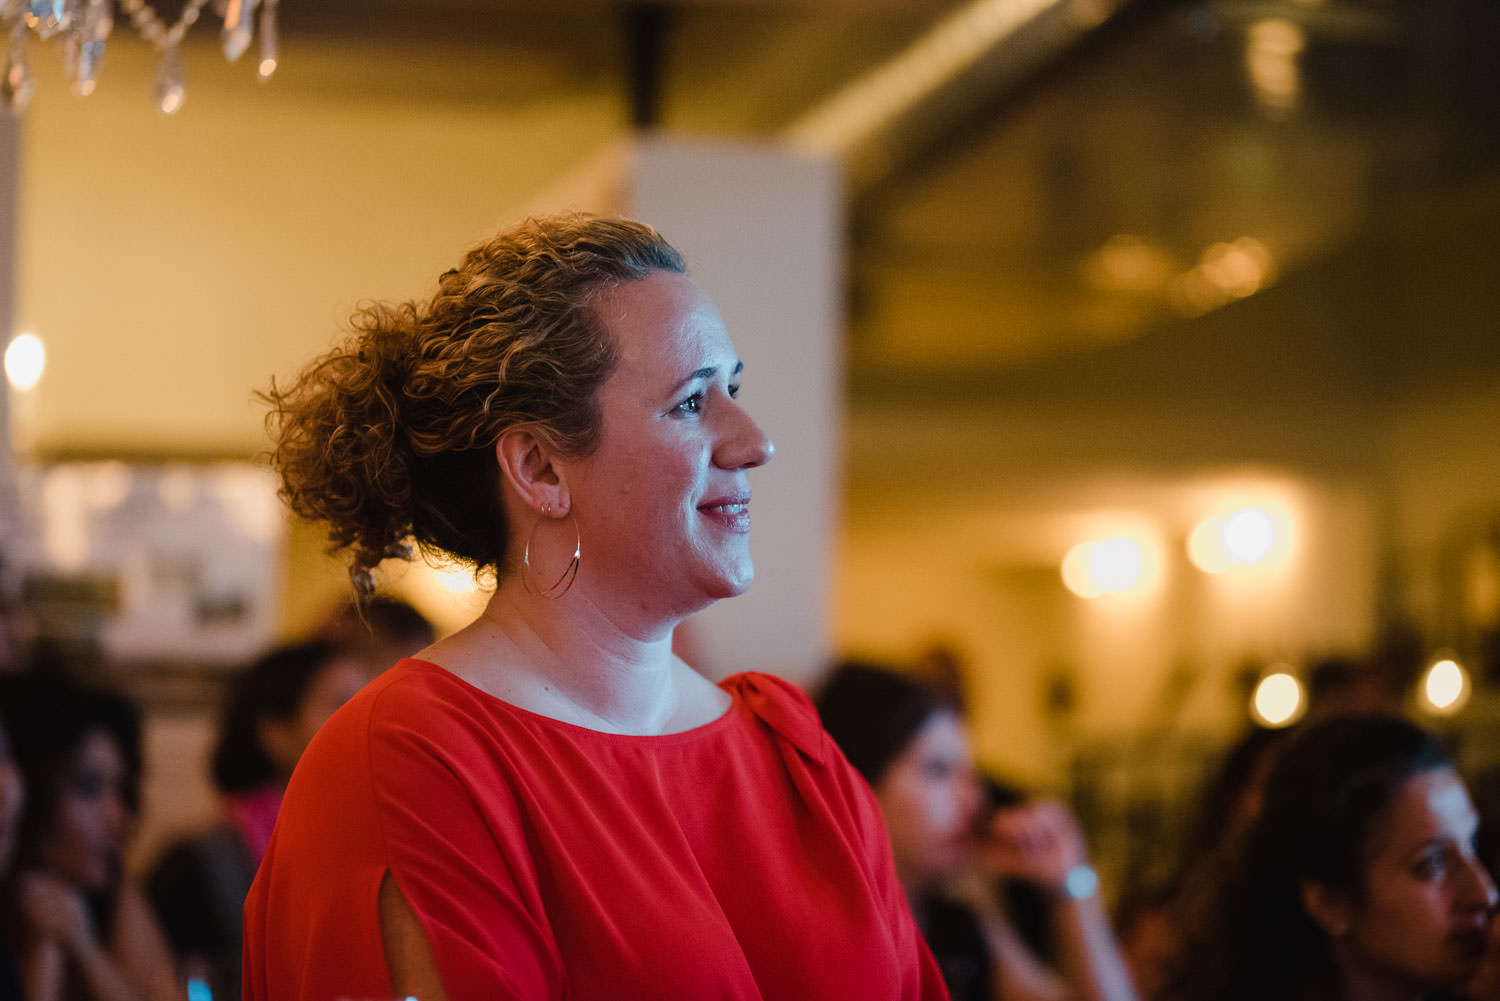 Kate Hintz who organized the City Bash event, looks radiant as she watches her husband make a speech.